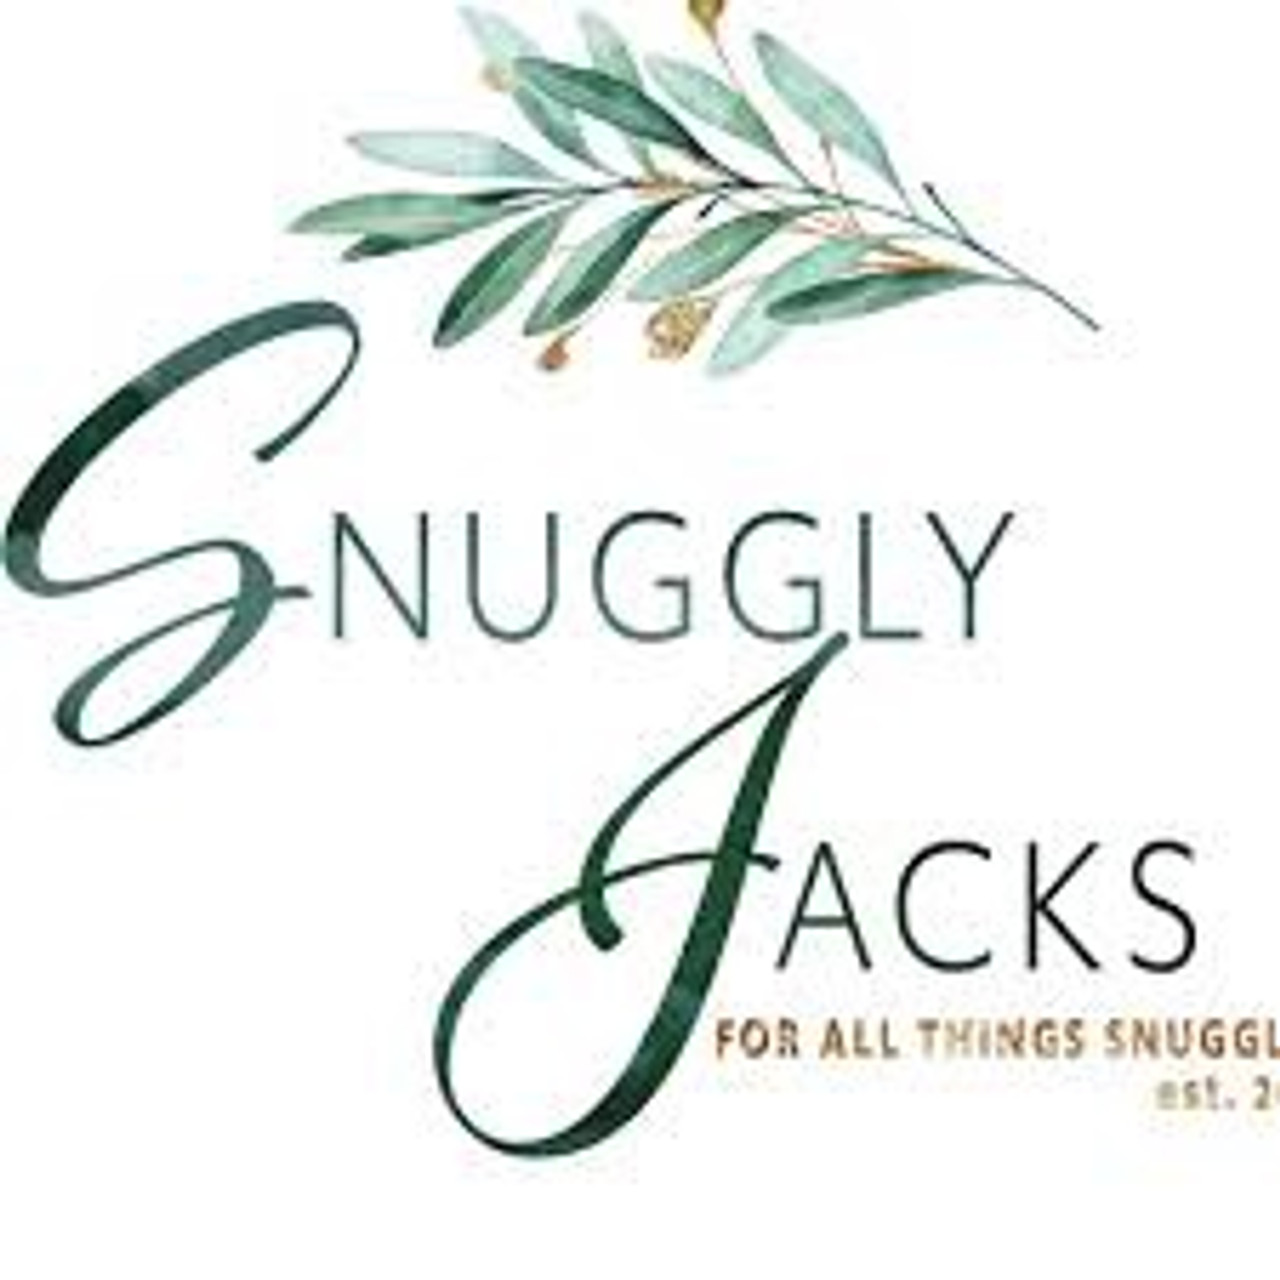 Snuggly Jacks Stretch Wrap Swaddle & Top Knot Set | Baby Barn Discounts Snuggly Jacks stretch swaddle is perfect for getting a nice tight fit, while still being breathable.